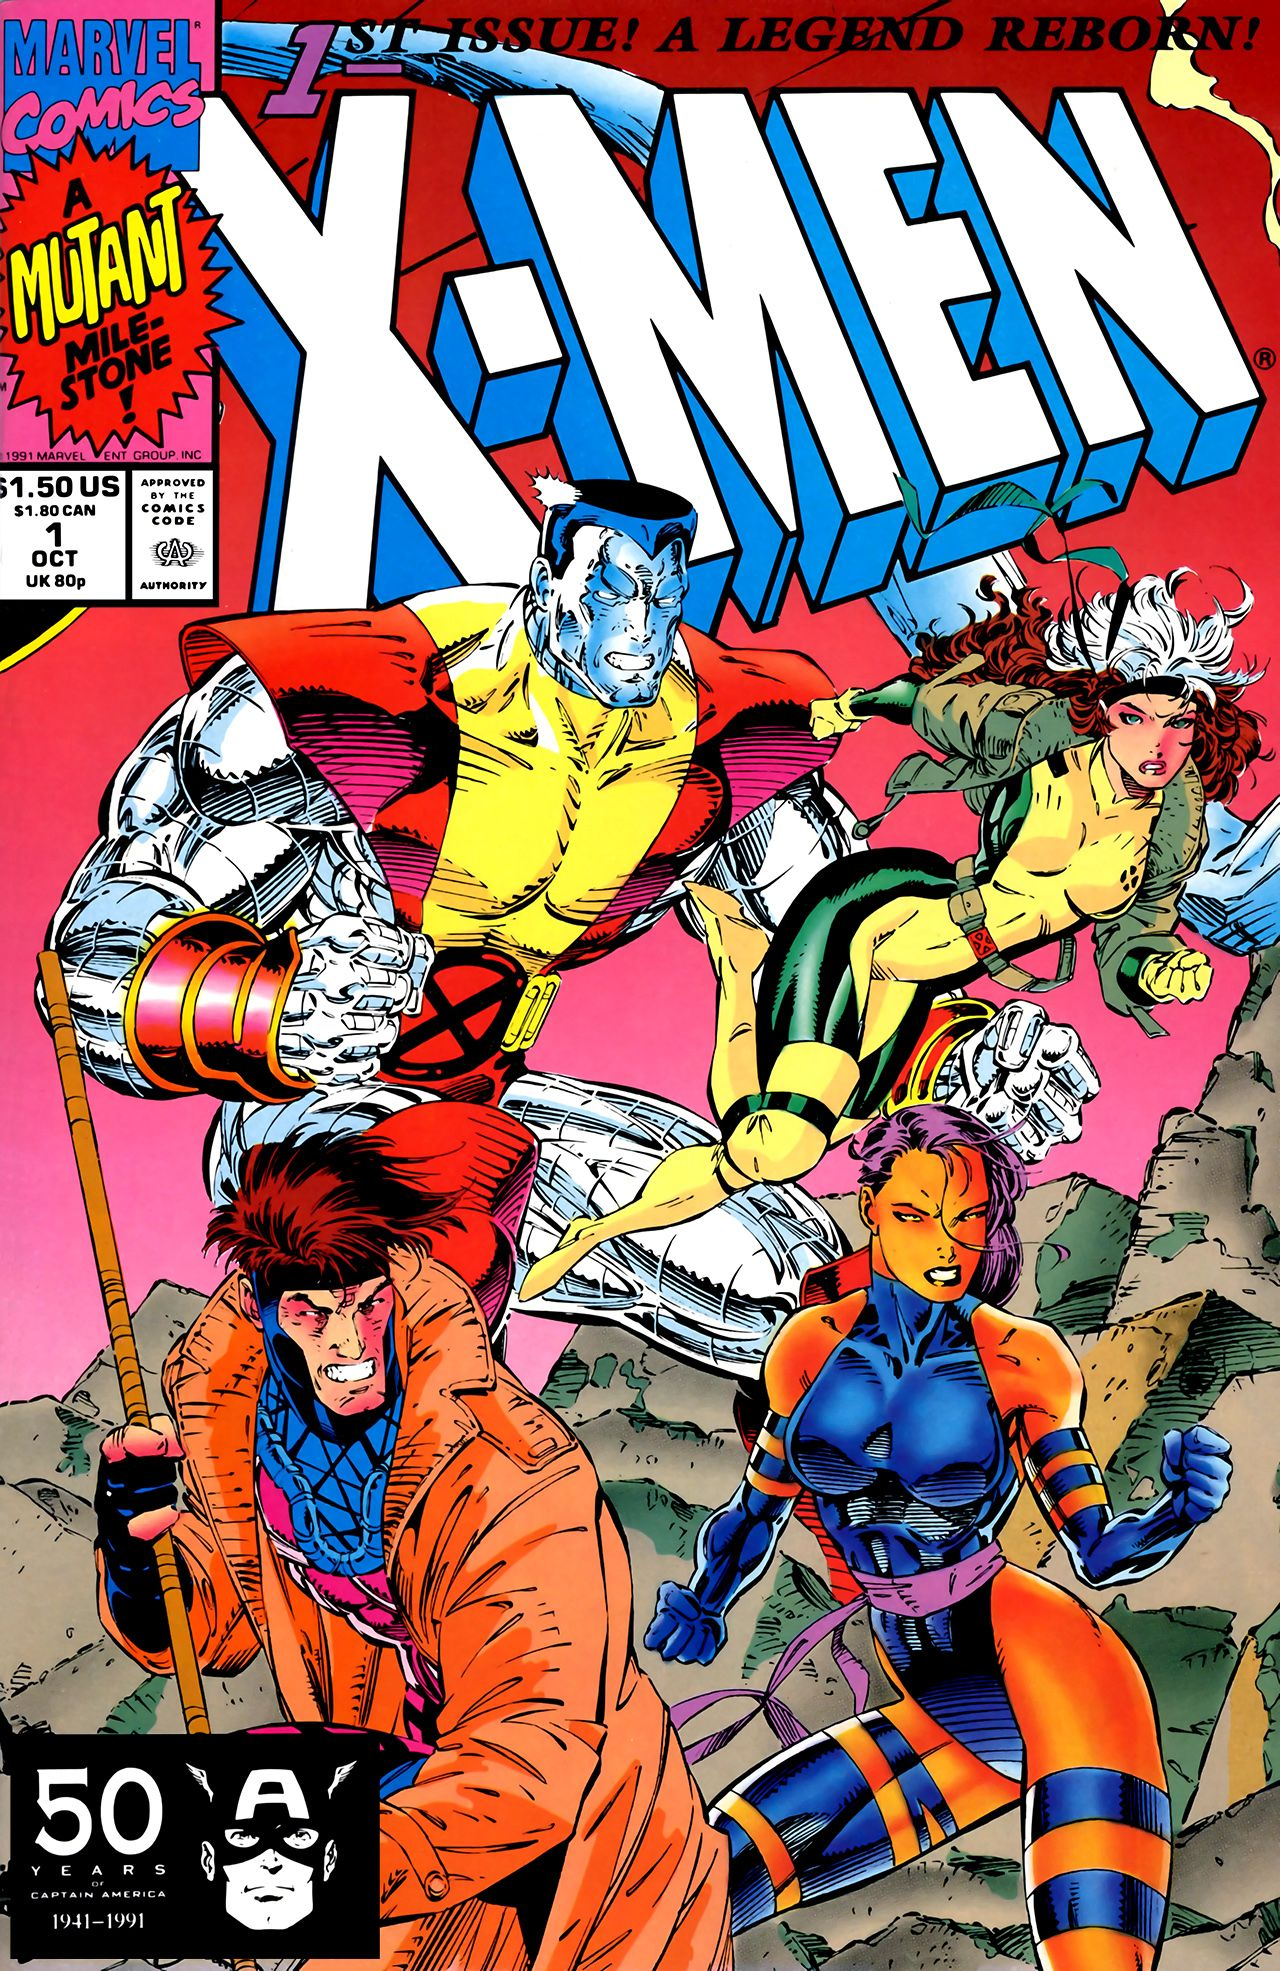 X Men Vol 2 1 Marvel Comics Covers Marvel Comic Books Comic Book Covers